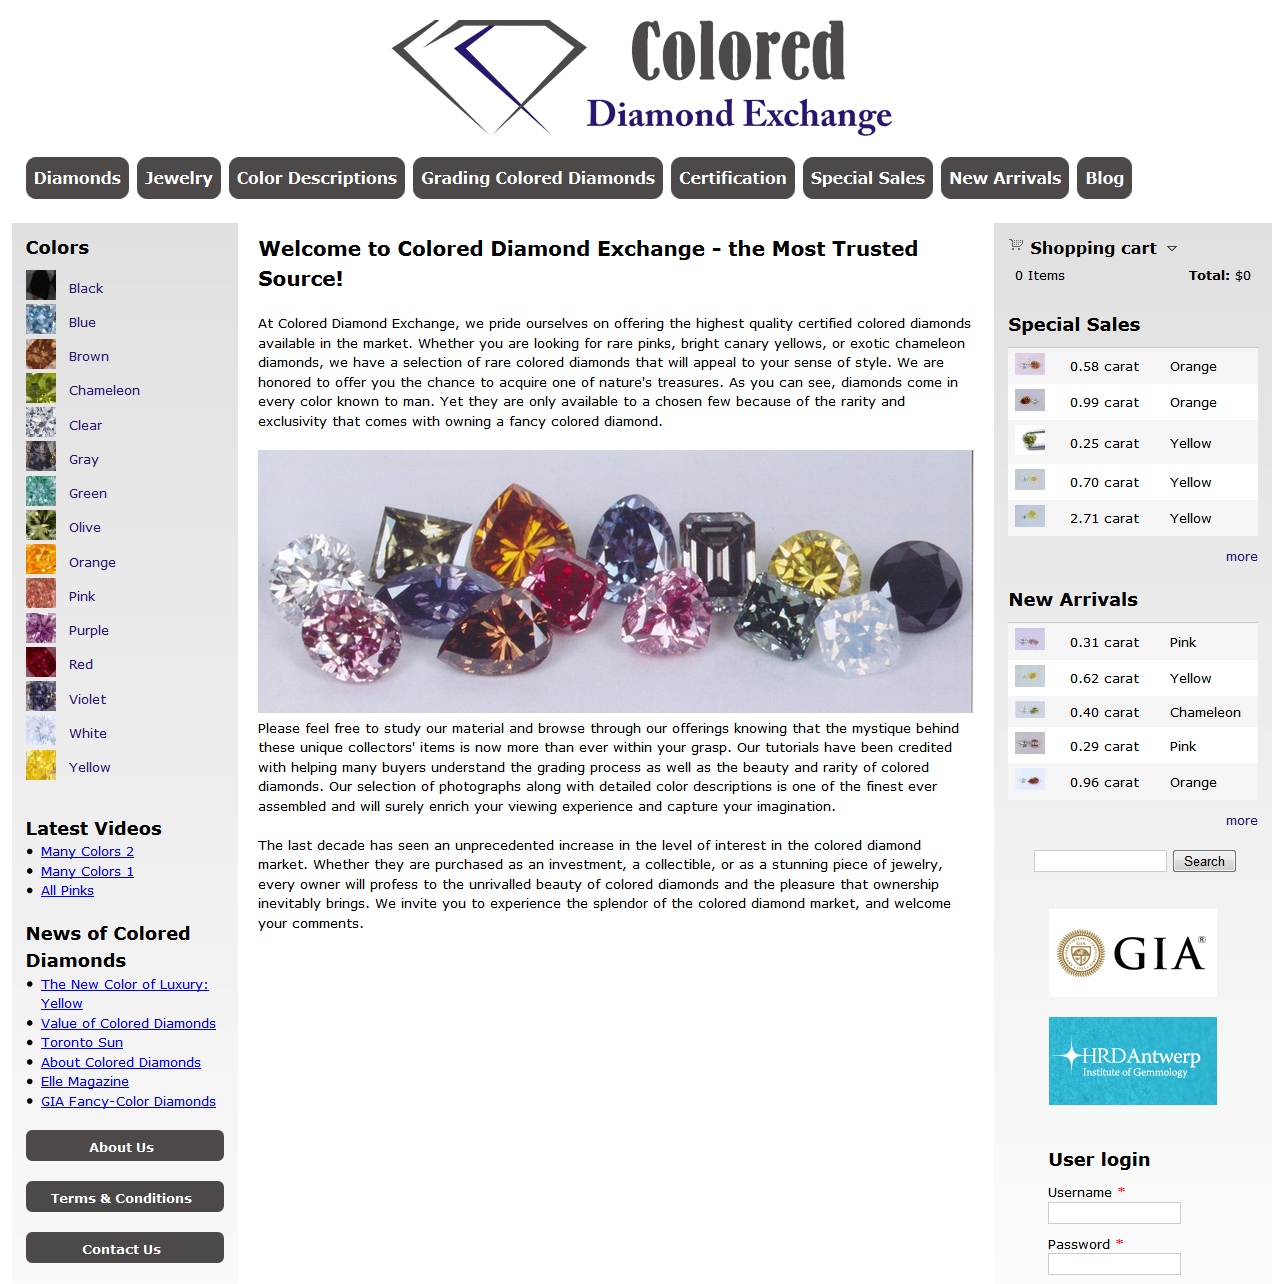 PG Services - Colored Diamond Exchange [square]